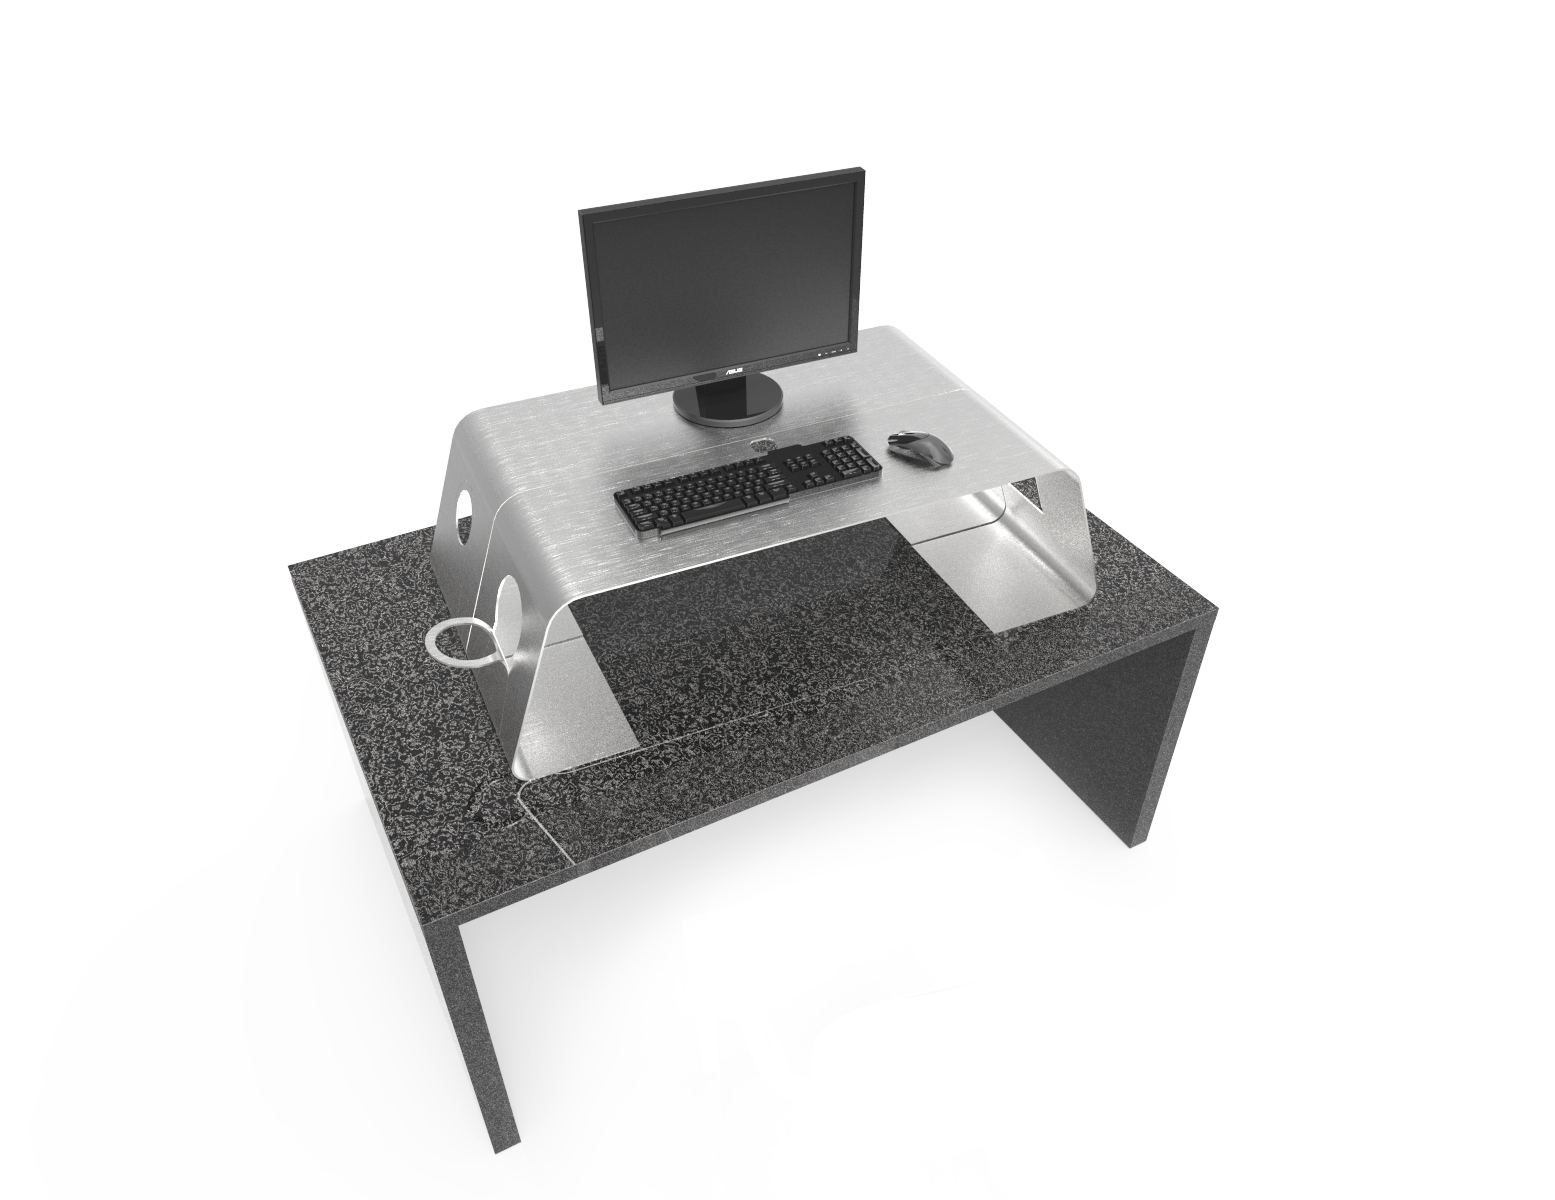 Bent Metal Desktop Riser Concept